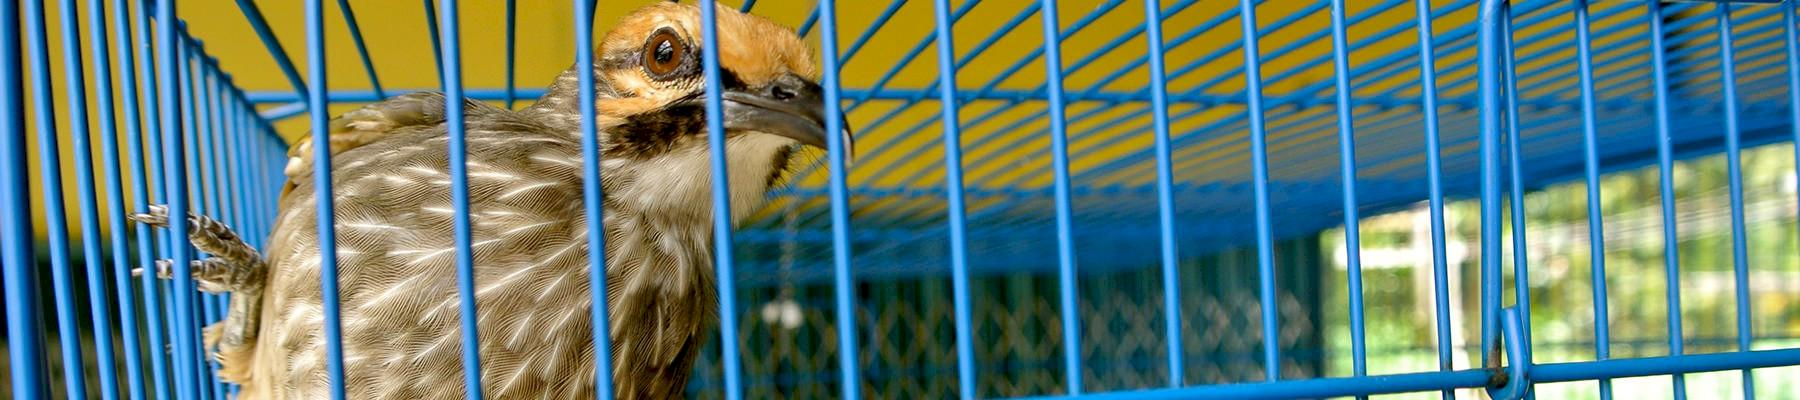 Straw-headed Bulbul: over-exploited for the songbird trade © TRAFFIC